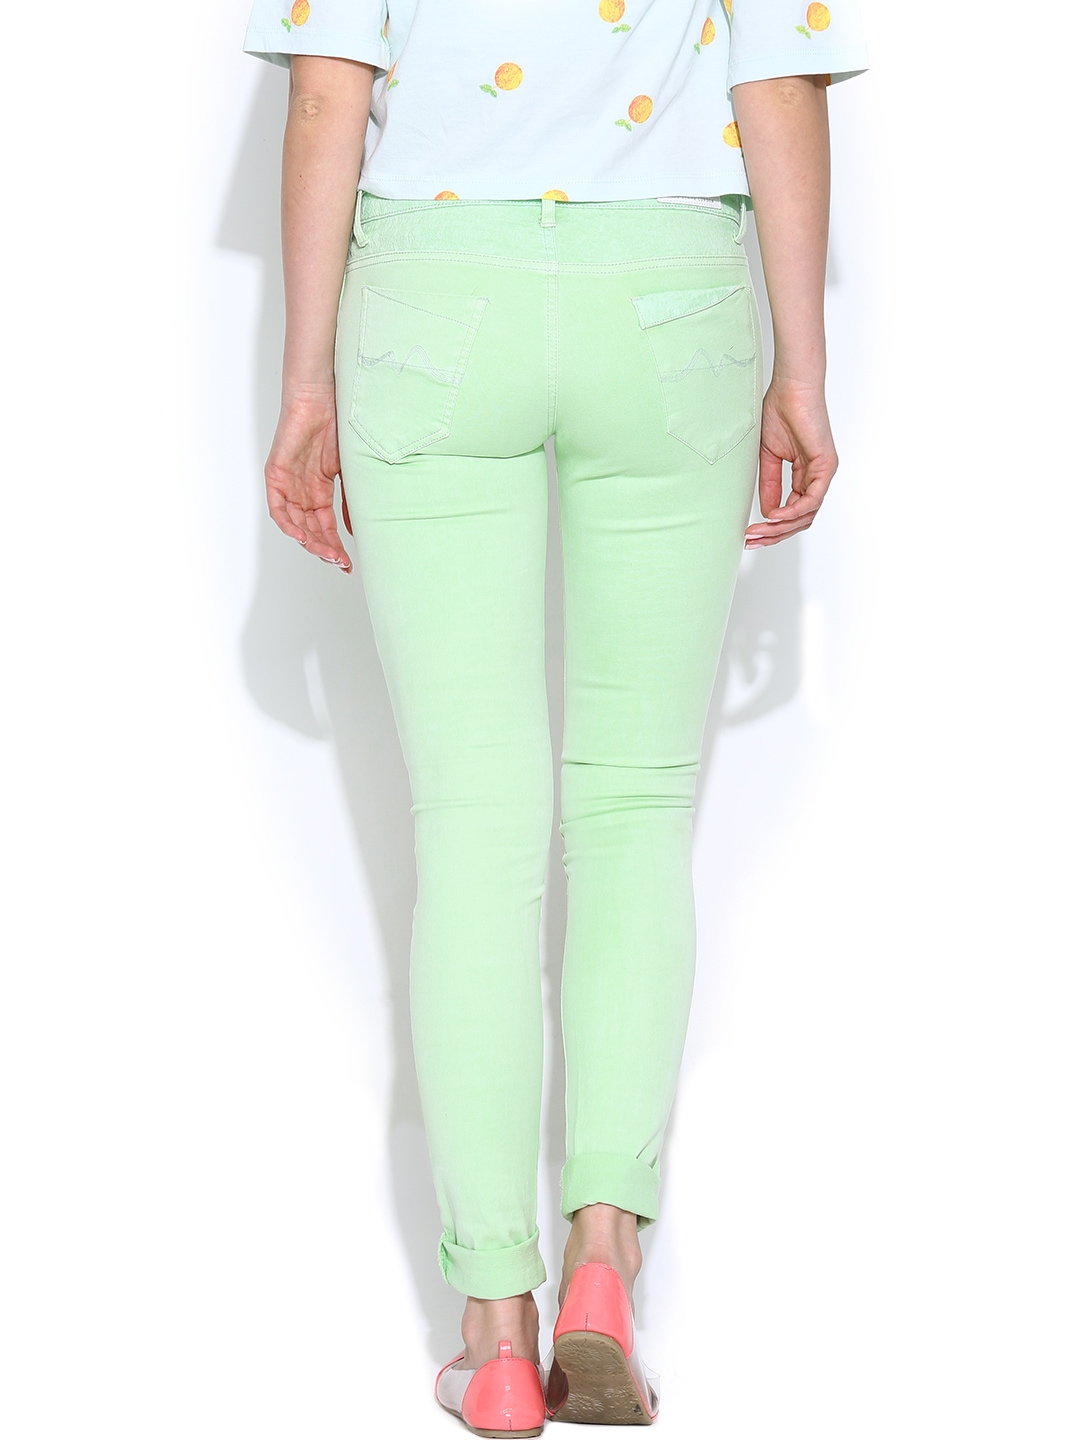 Brilliant Jeans Skinny Jeans Mint GreenWash ColoredDenim  Womens Else Jeans